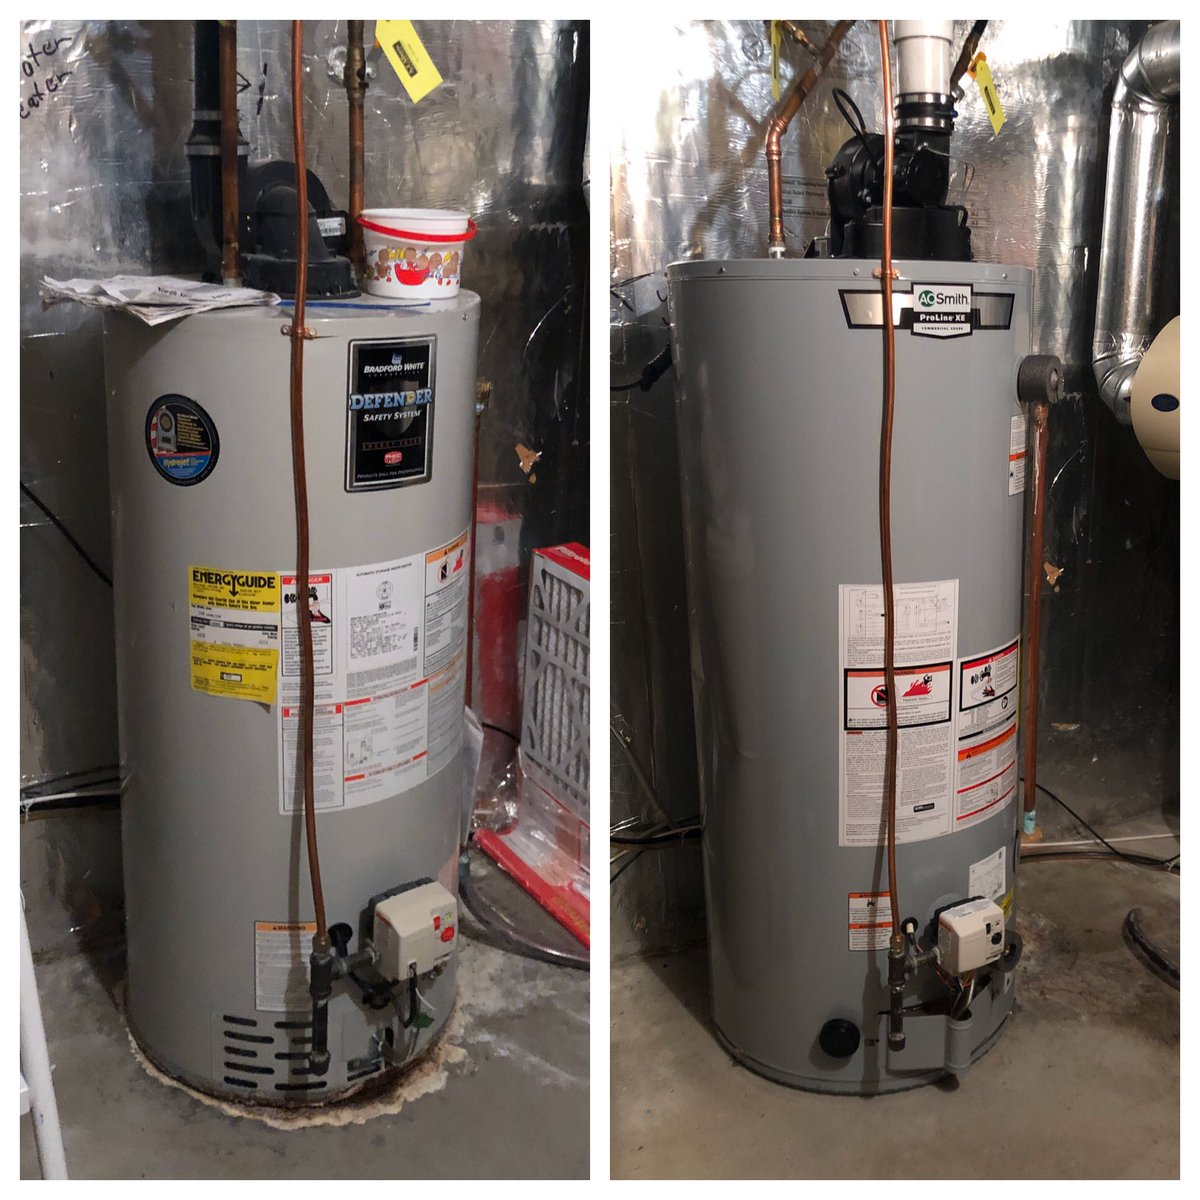 John Kriesel On Twitter Thanks To Silvertreehvac We Replaced The Old 50 Gallon Water Heater With A New 75 Gallon And With The New Water Softener It Will Still Cost Wayyyyyy Less